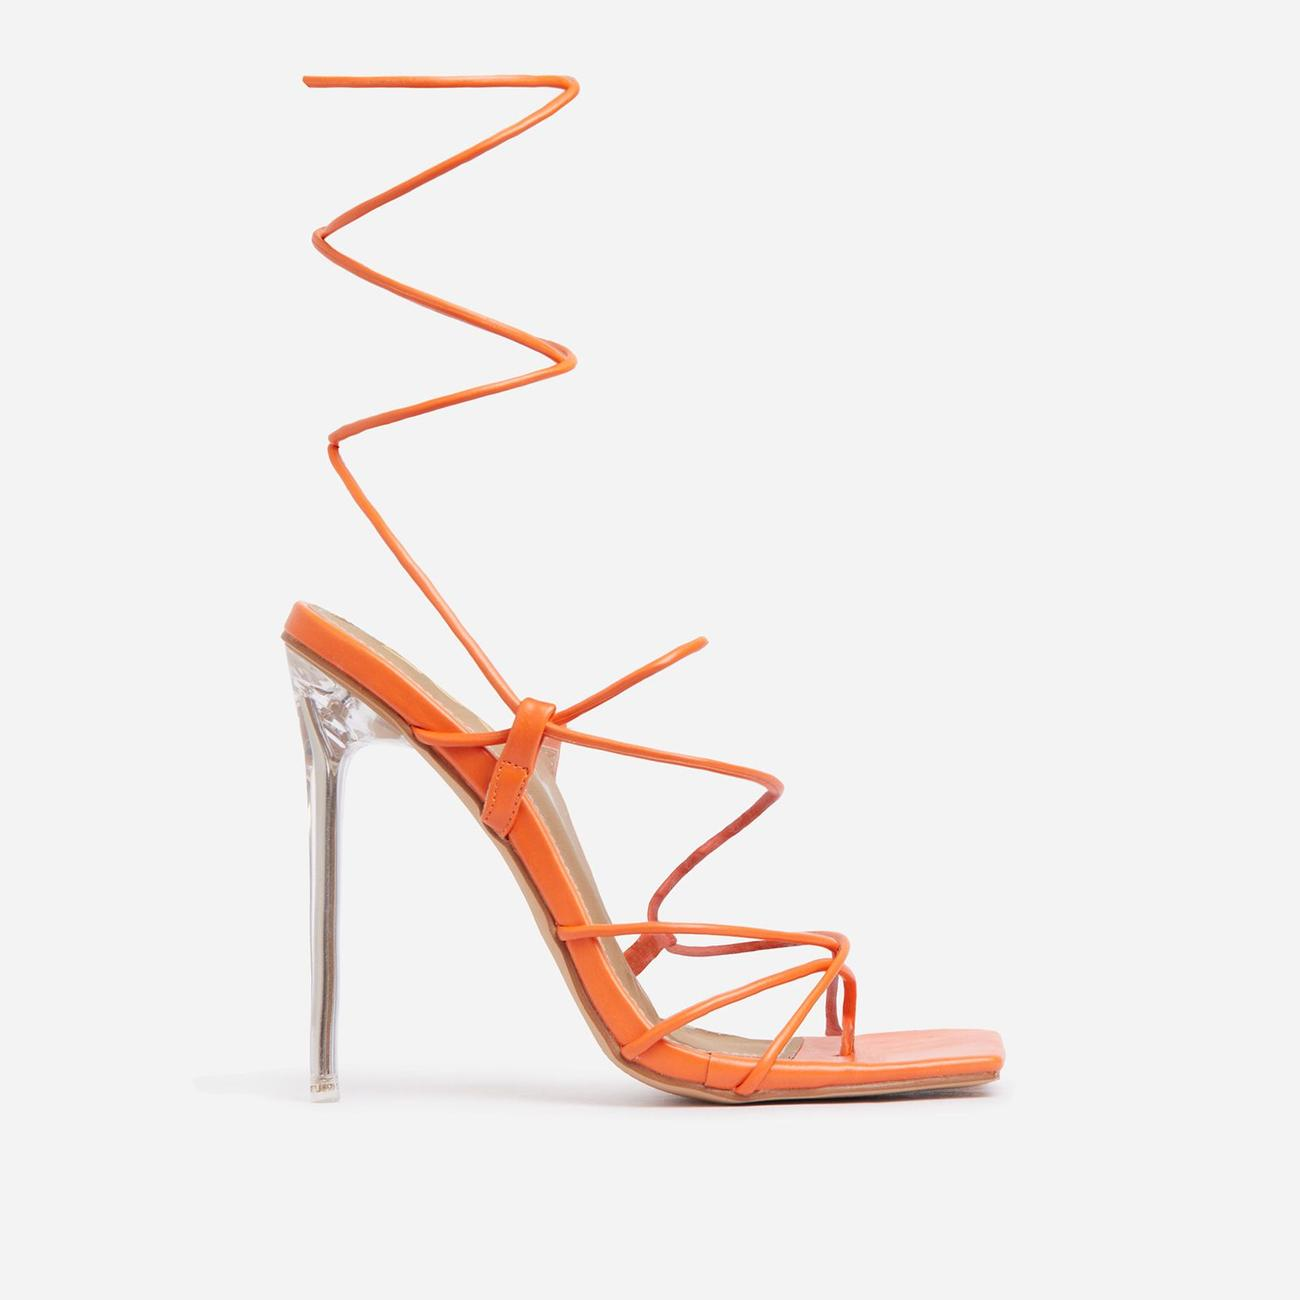 Sunbathe Square Toe Lace Up Clear Perspex Heel In Orange Faux Leather Image 1